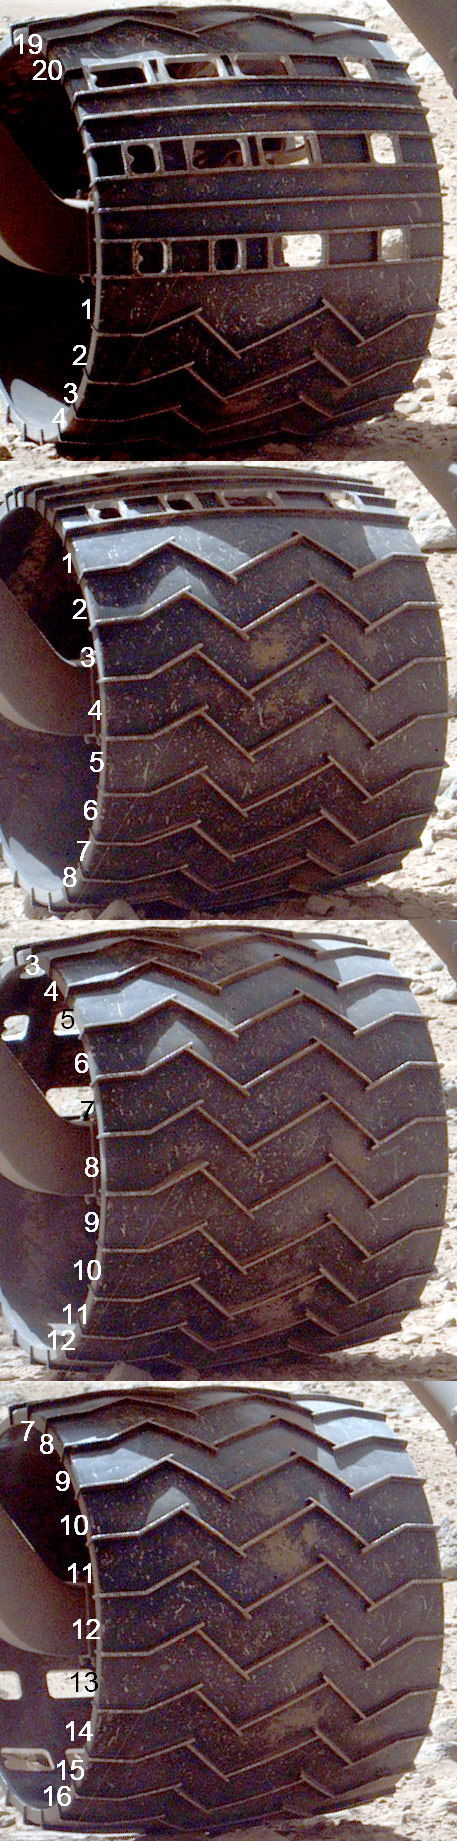 Curiosity wheel survey, sol 513: left rear wheel